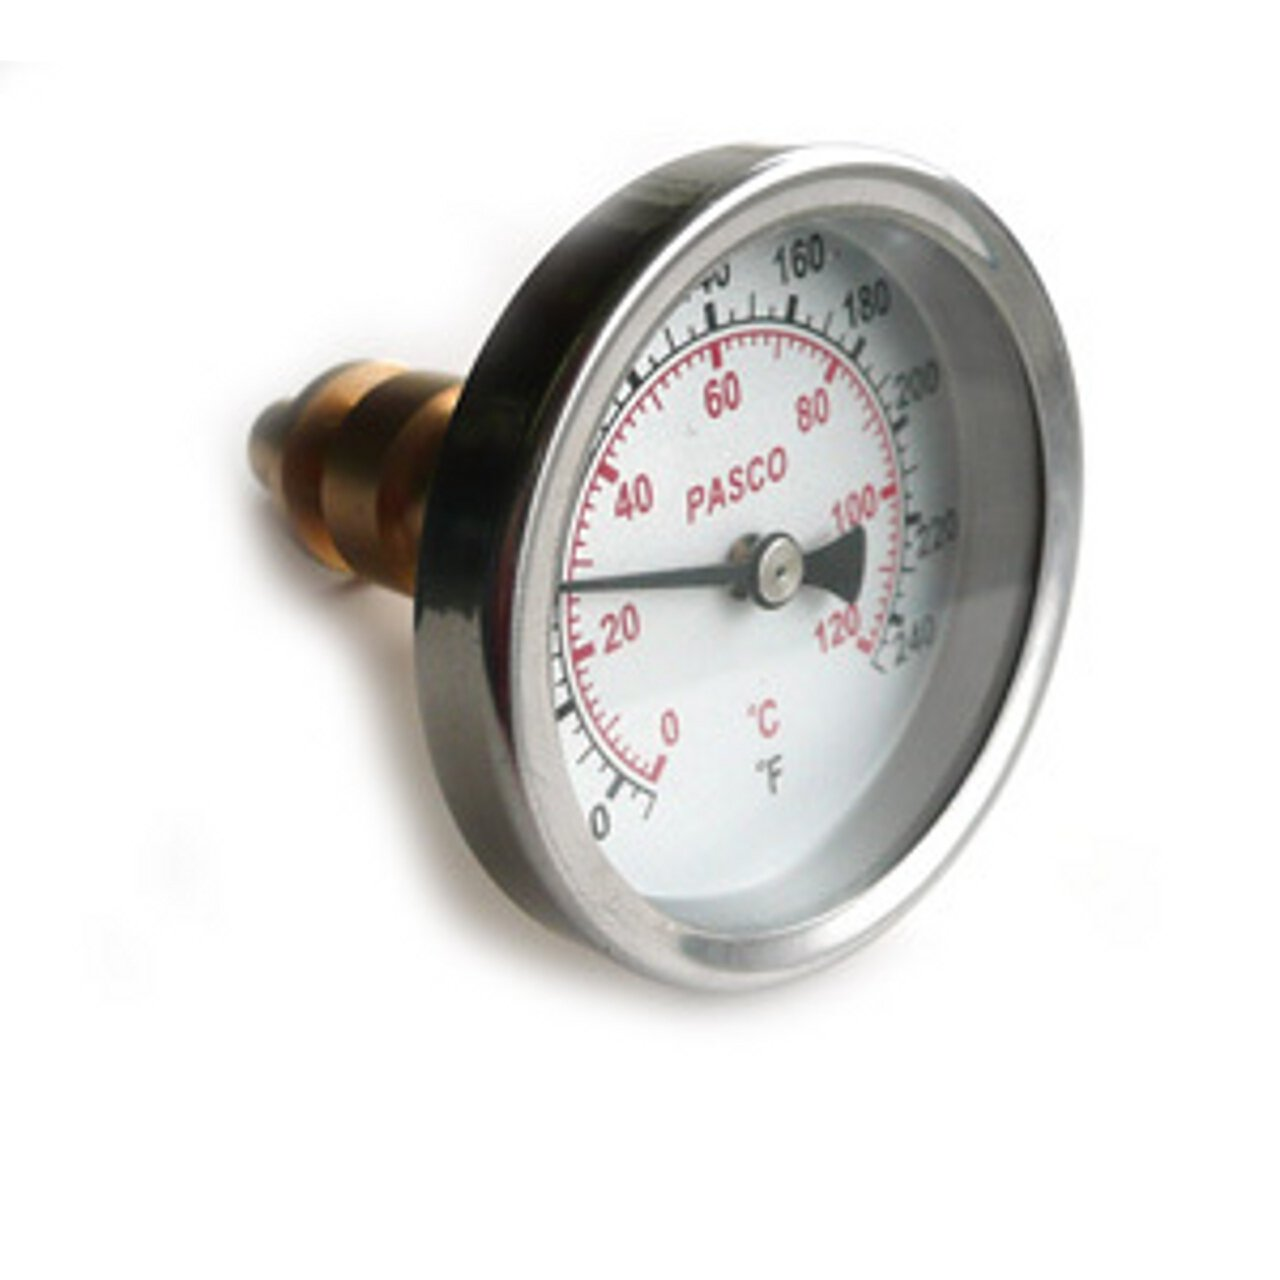 Pasco 1449 Dial Thermometer with Brass Well with 2.5-Inch Face